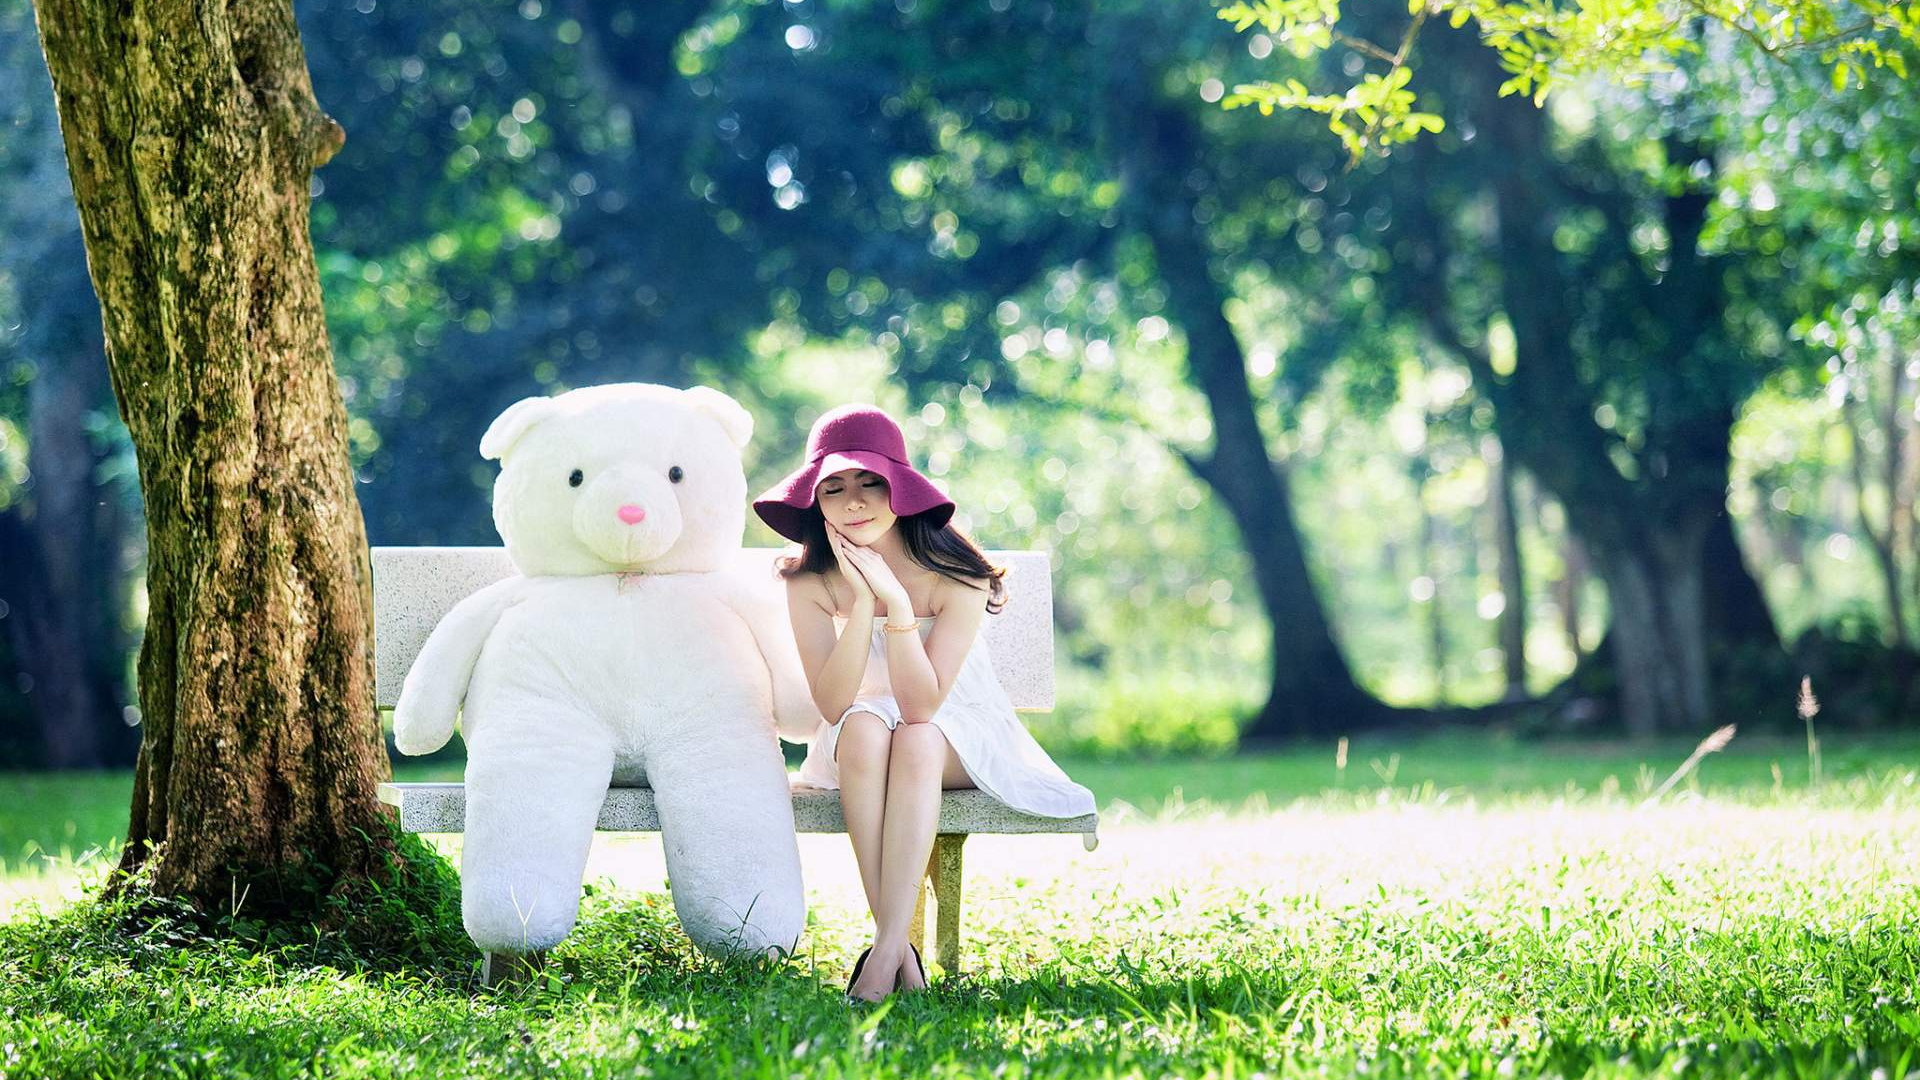 Download 1920x1080 Wallpaper Large Teddy Bear And Cute Girl